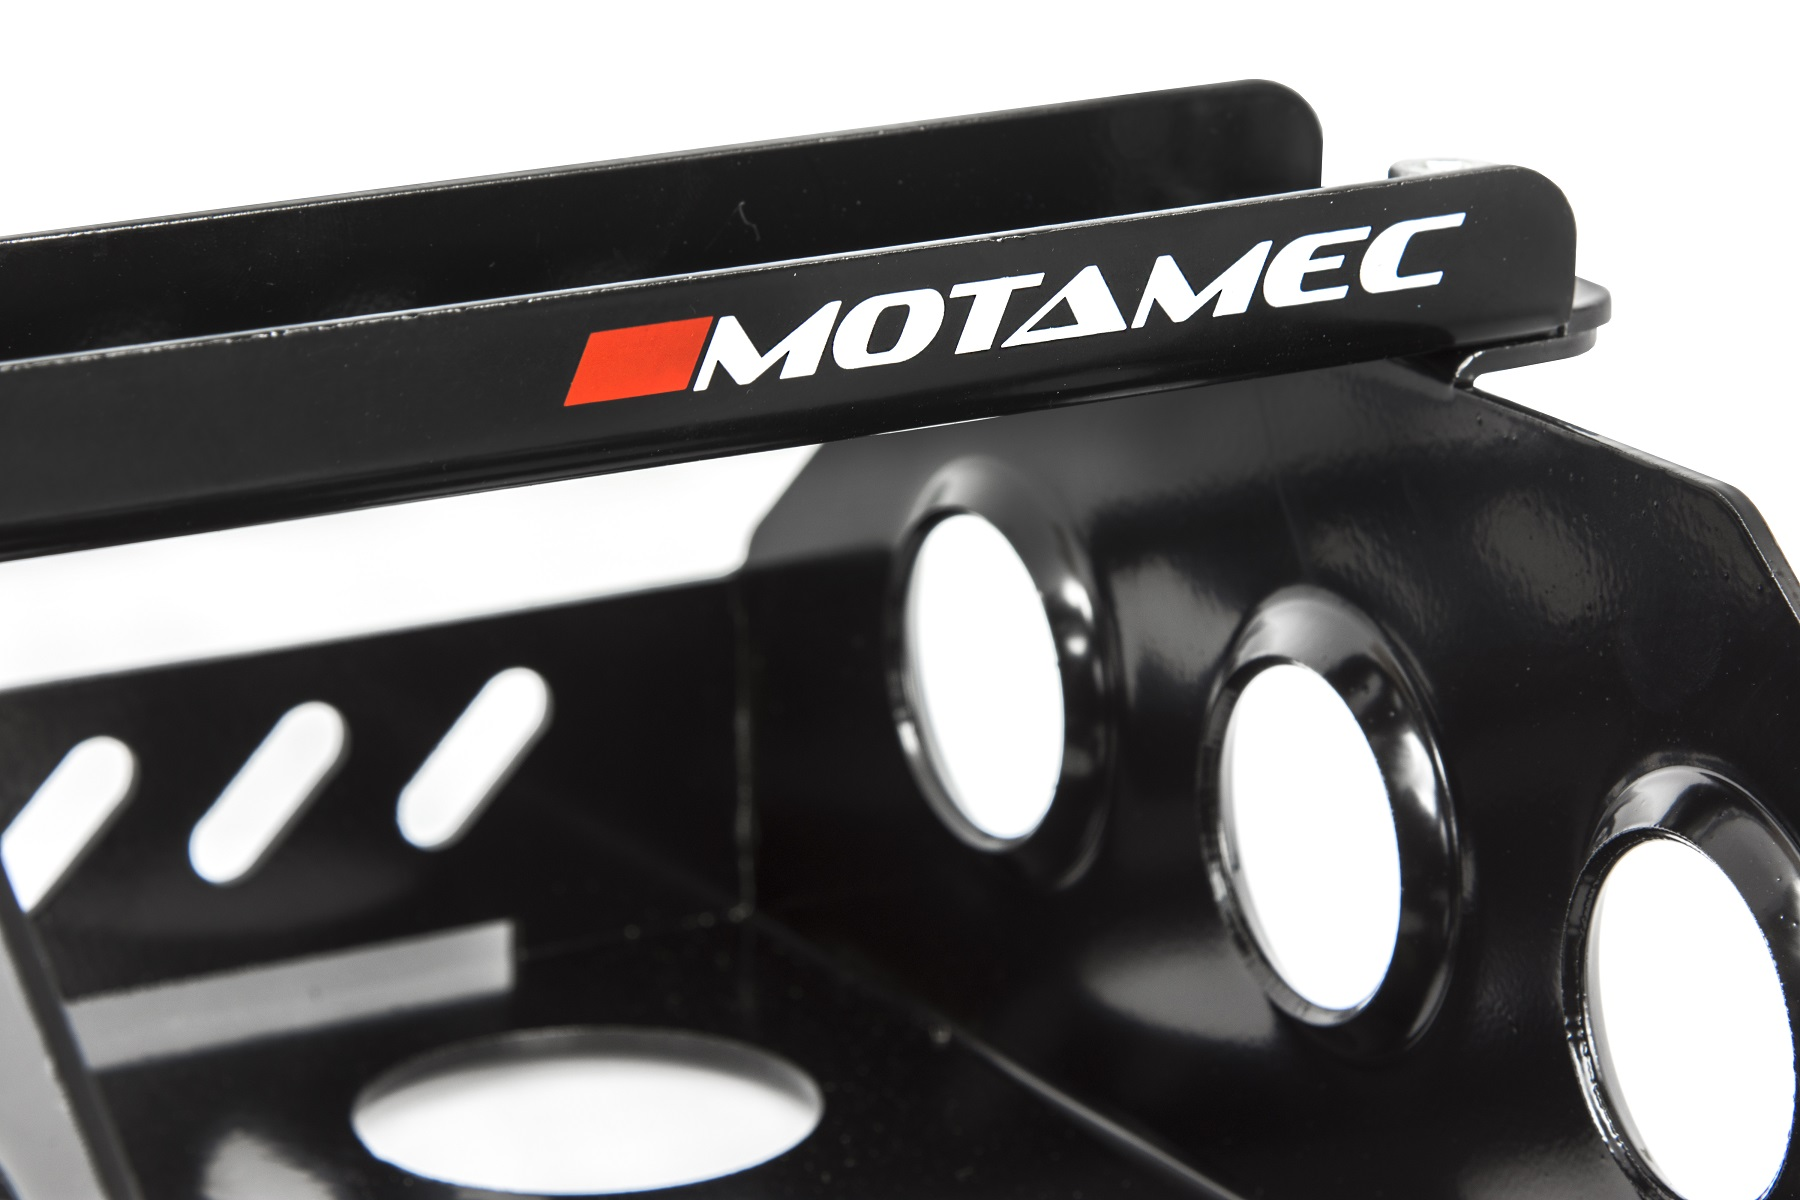 Anodized Motamec Alloy Race Battery Tray Red Top 40 Flat Mounting Box